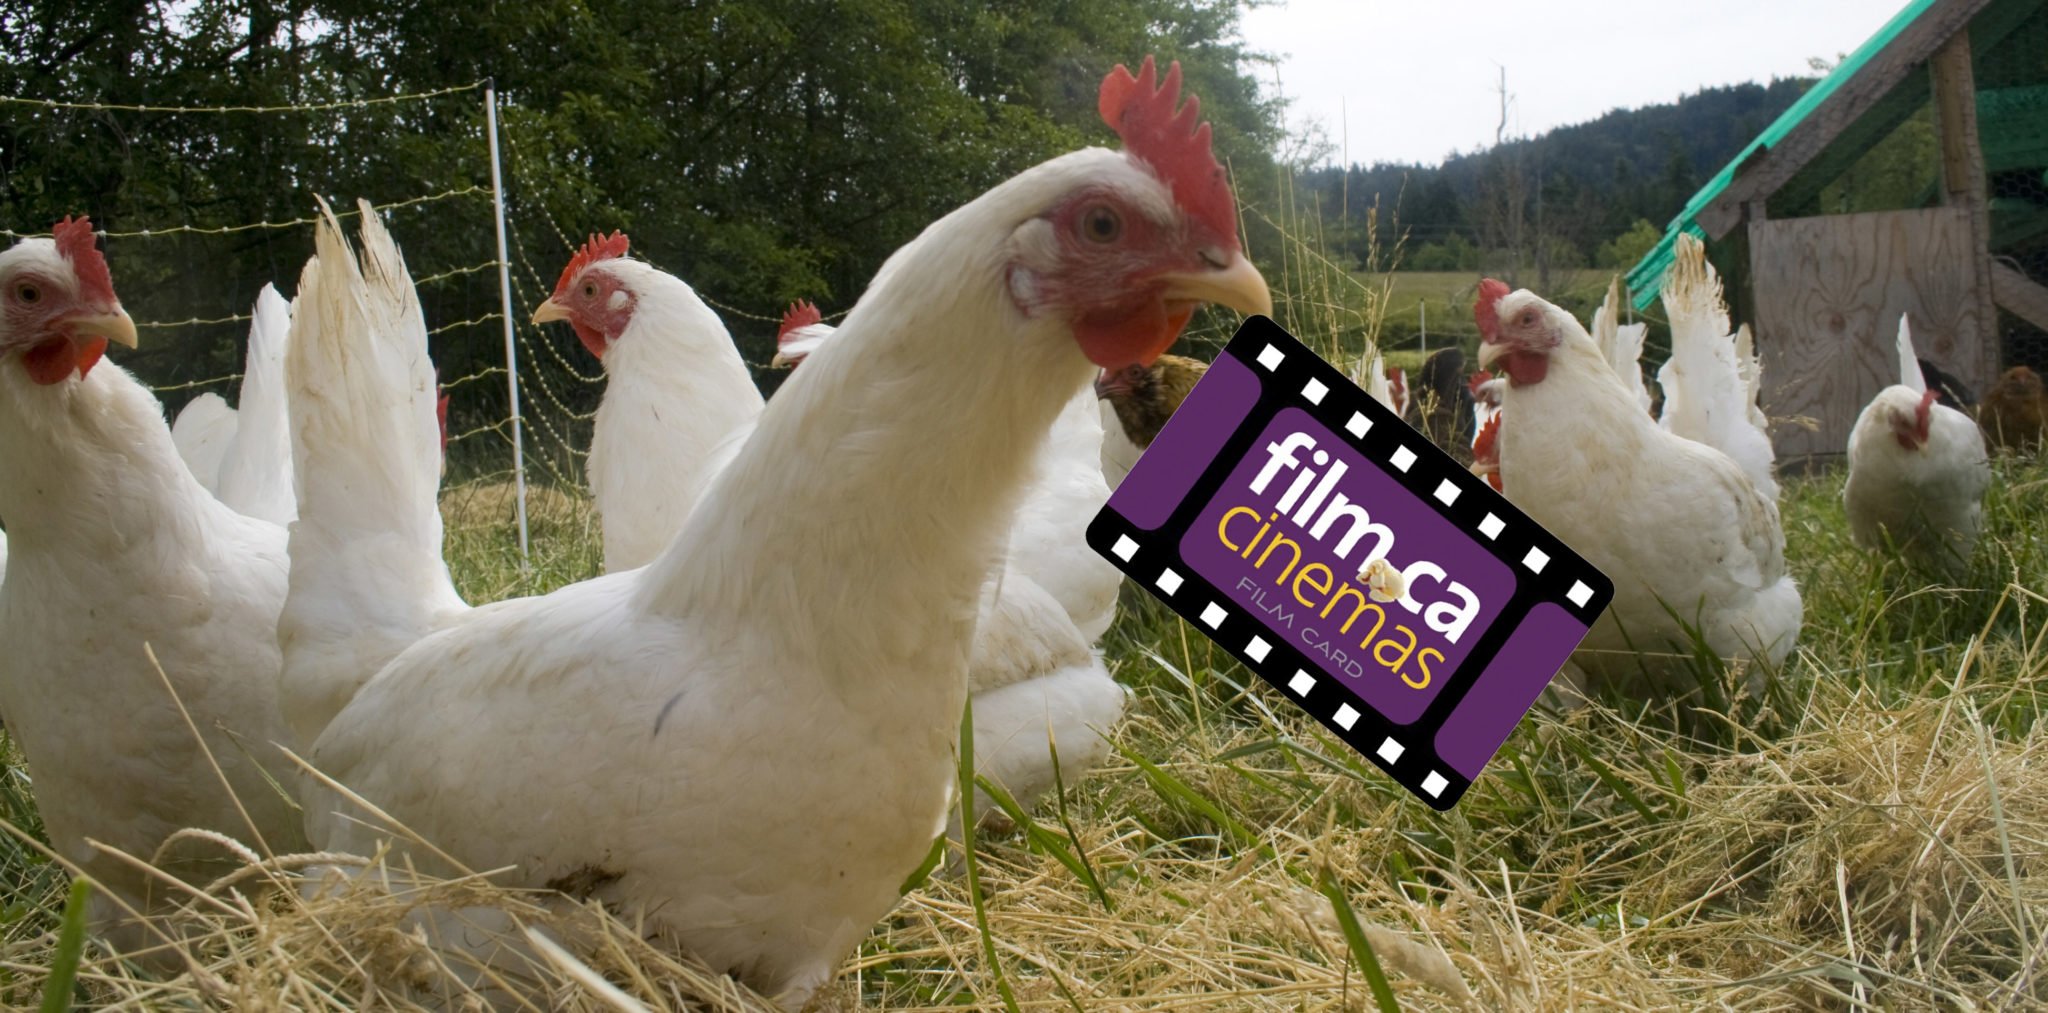 Signing up for a Film Card? Get a free chicken with 200 points!